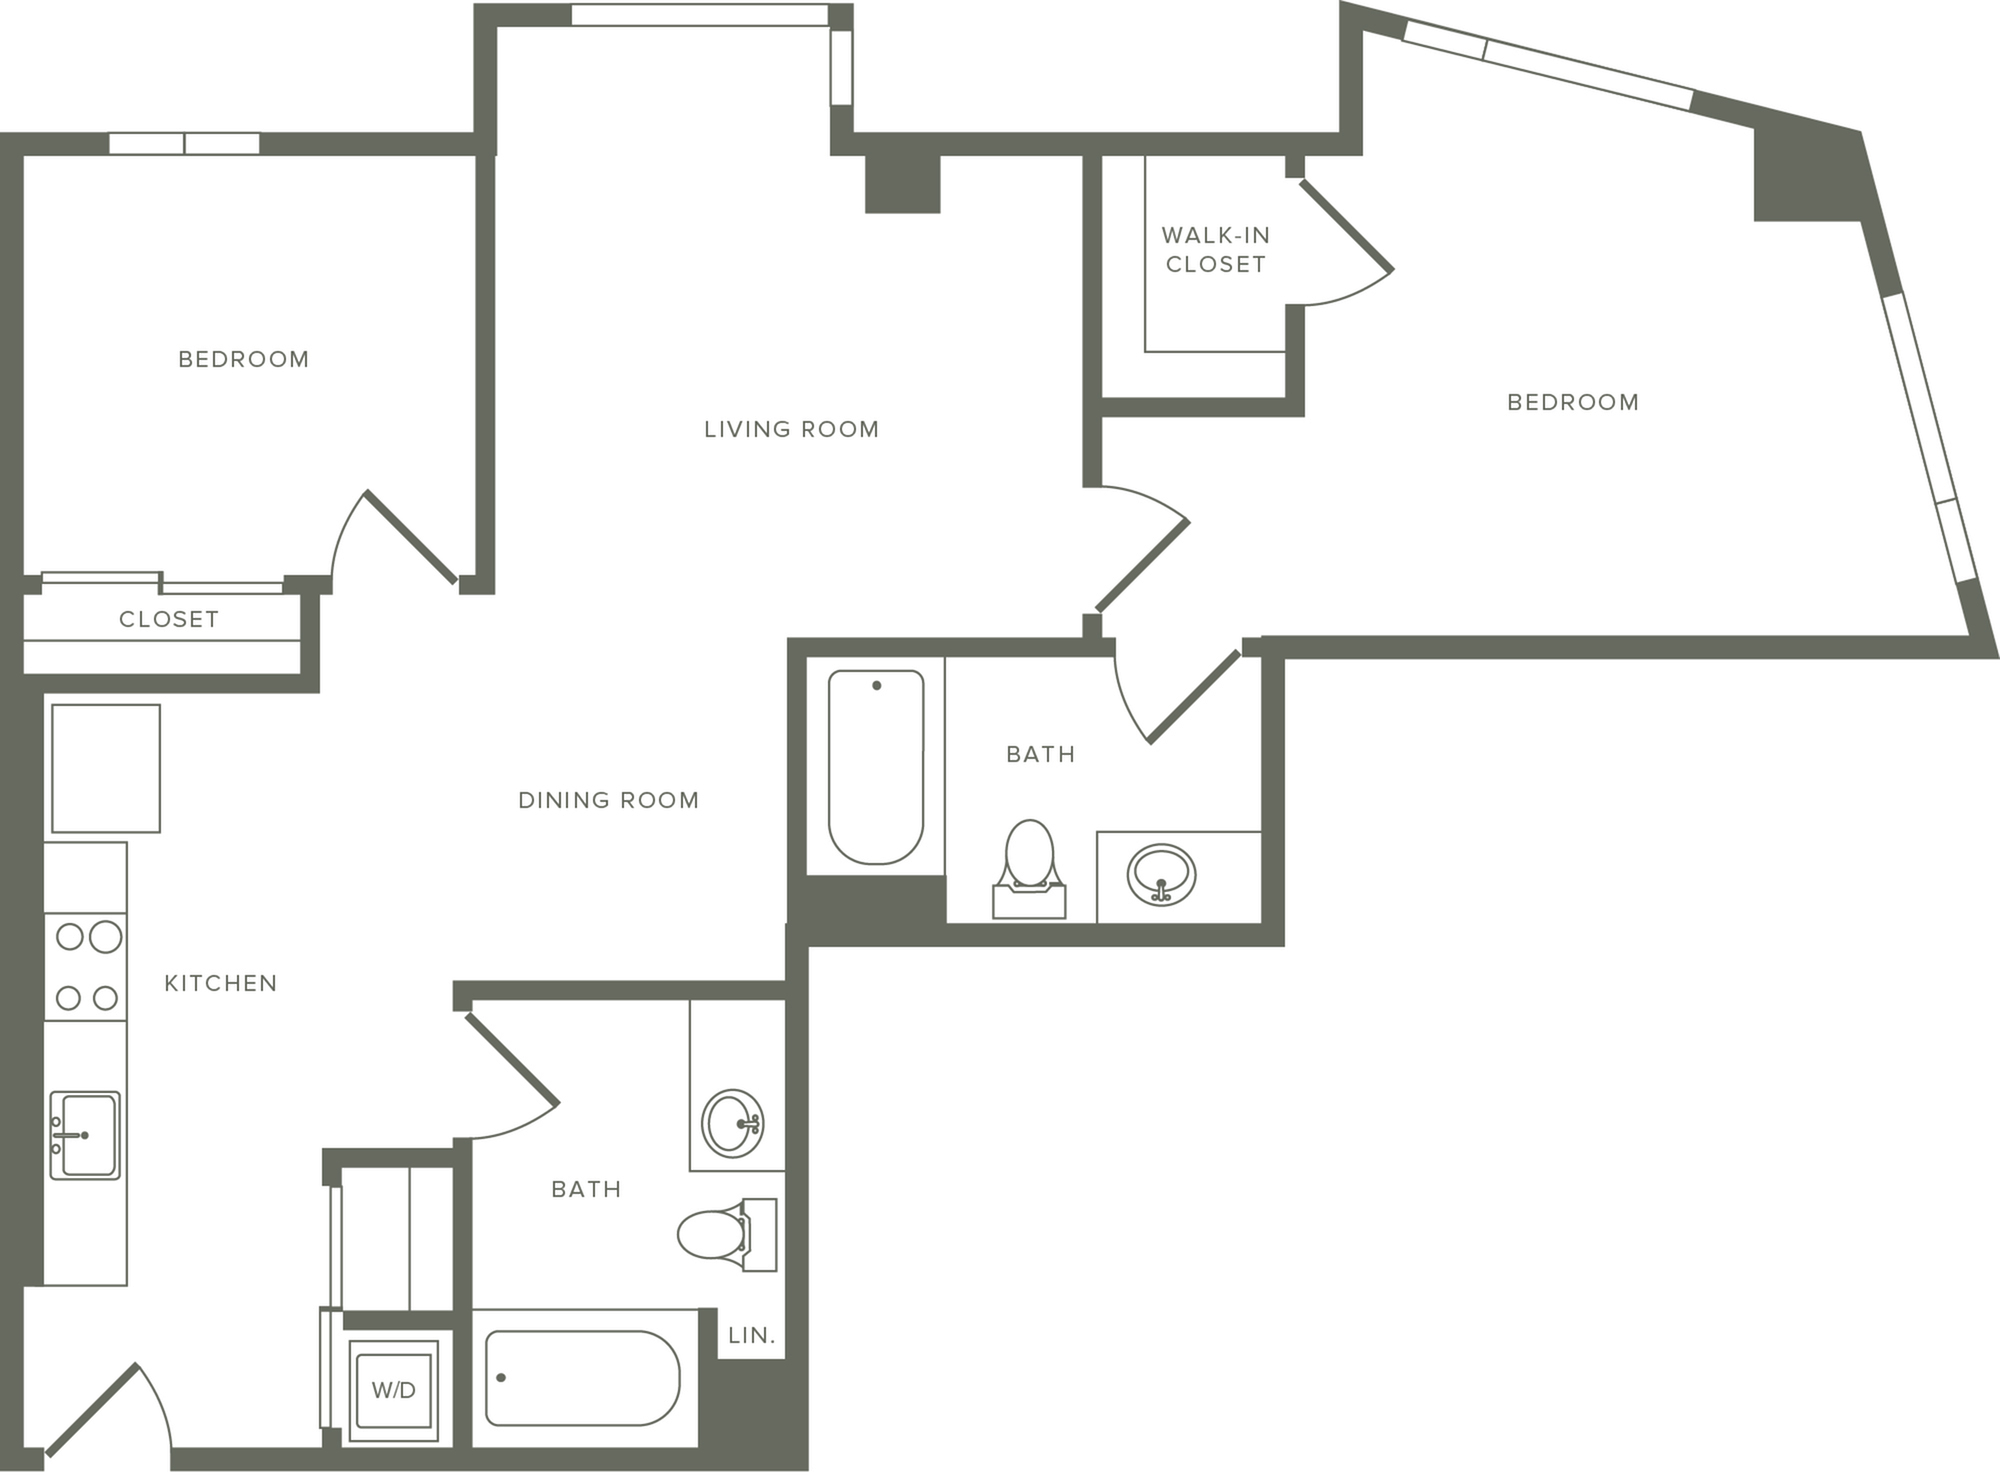 988 to 991 square foot two bedroom two bath apartment floorplan image